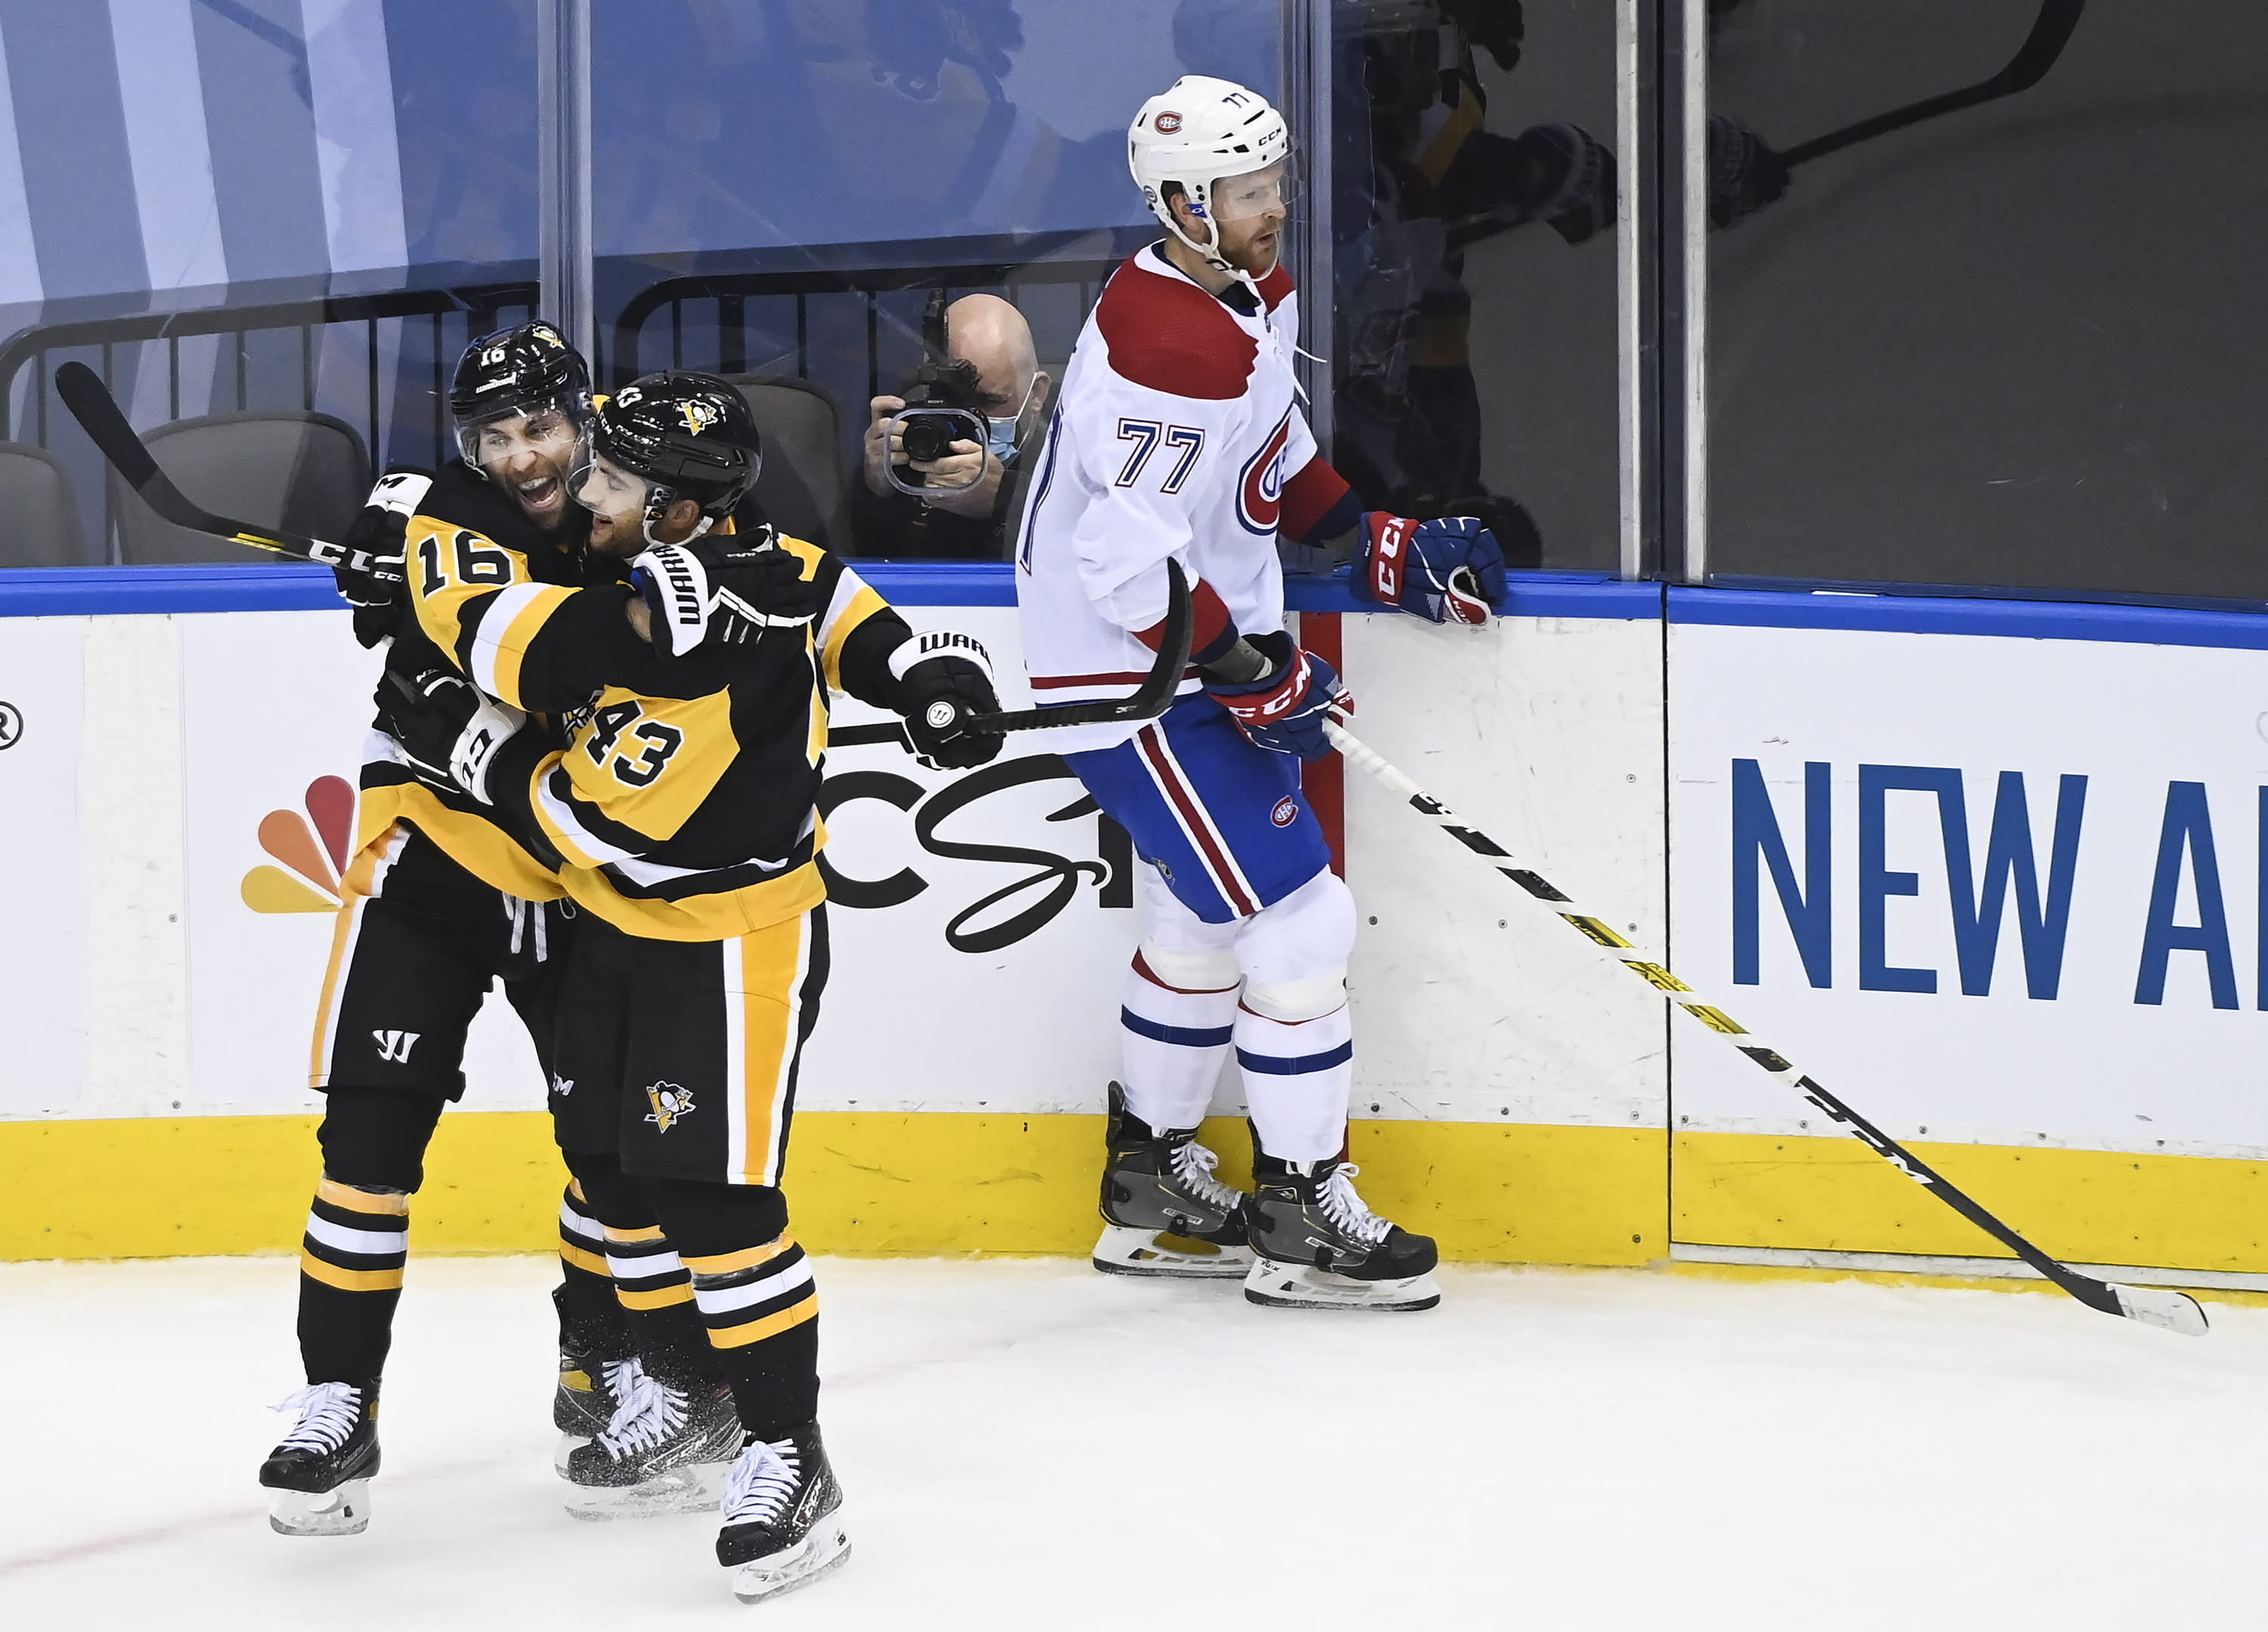 Pittsburgh Penguins left wing Jason Zucker (16) celebrates his goal with teammate Conor Sheary (43) as Montreal Canadiens defenseman Brett Kulak (77) skate by during the third period of an NHL hockey playoff game Monday, Aug. 3, 2020 in Toronto. (Nathan Denette/The Canadian Press via AP)